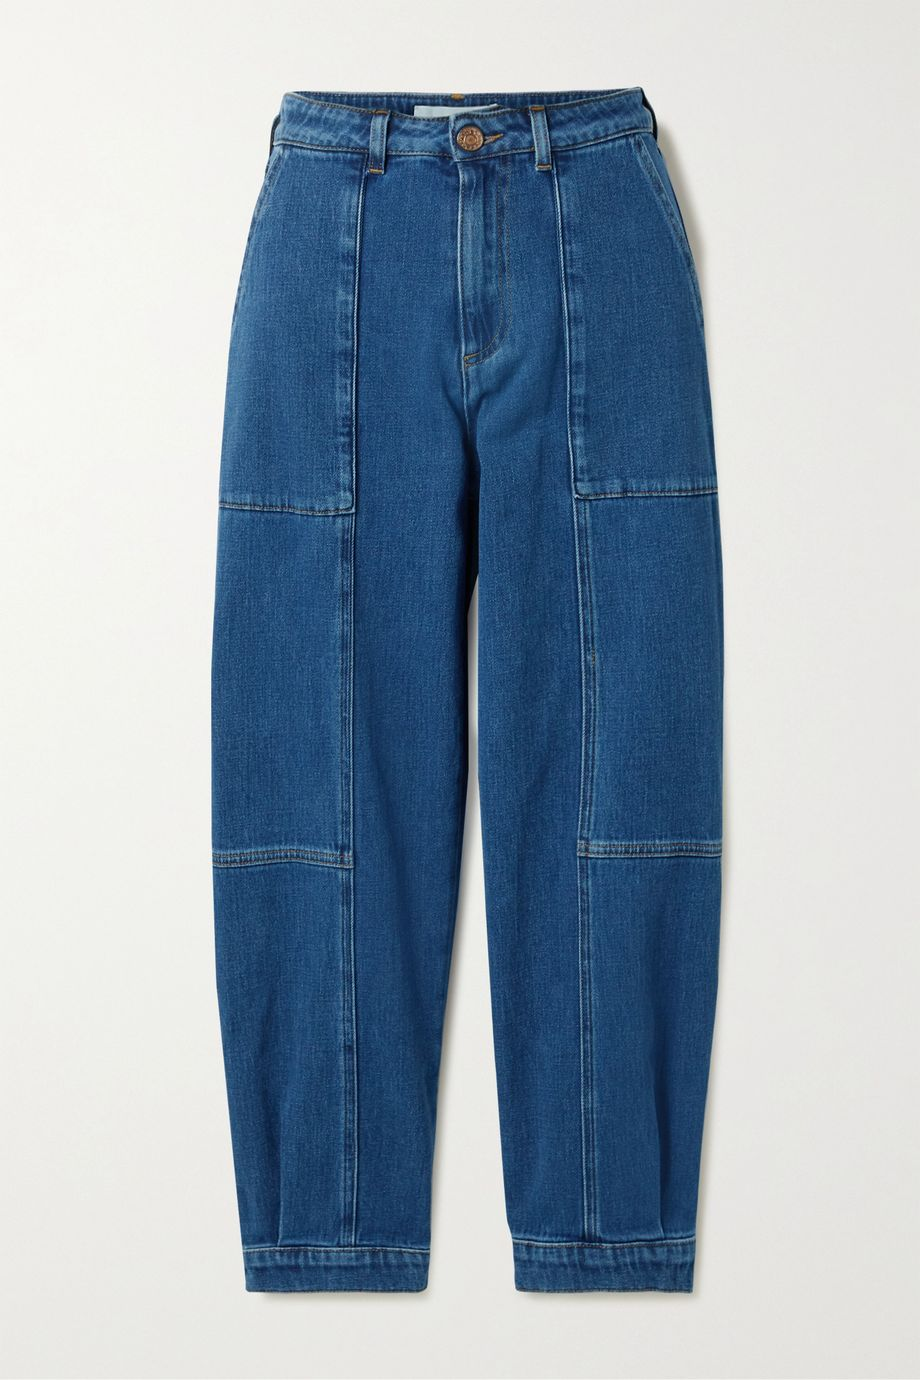 See By Chloé Cropped paneled high-rise jeans